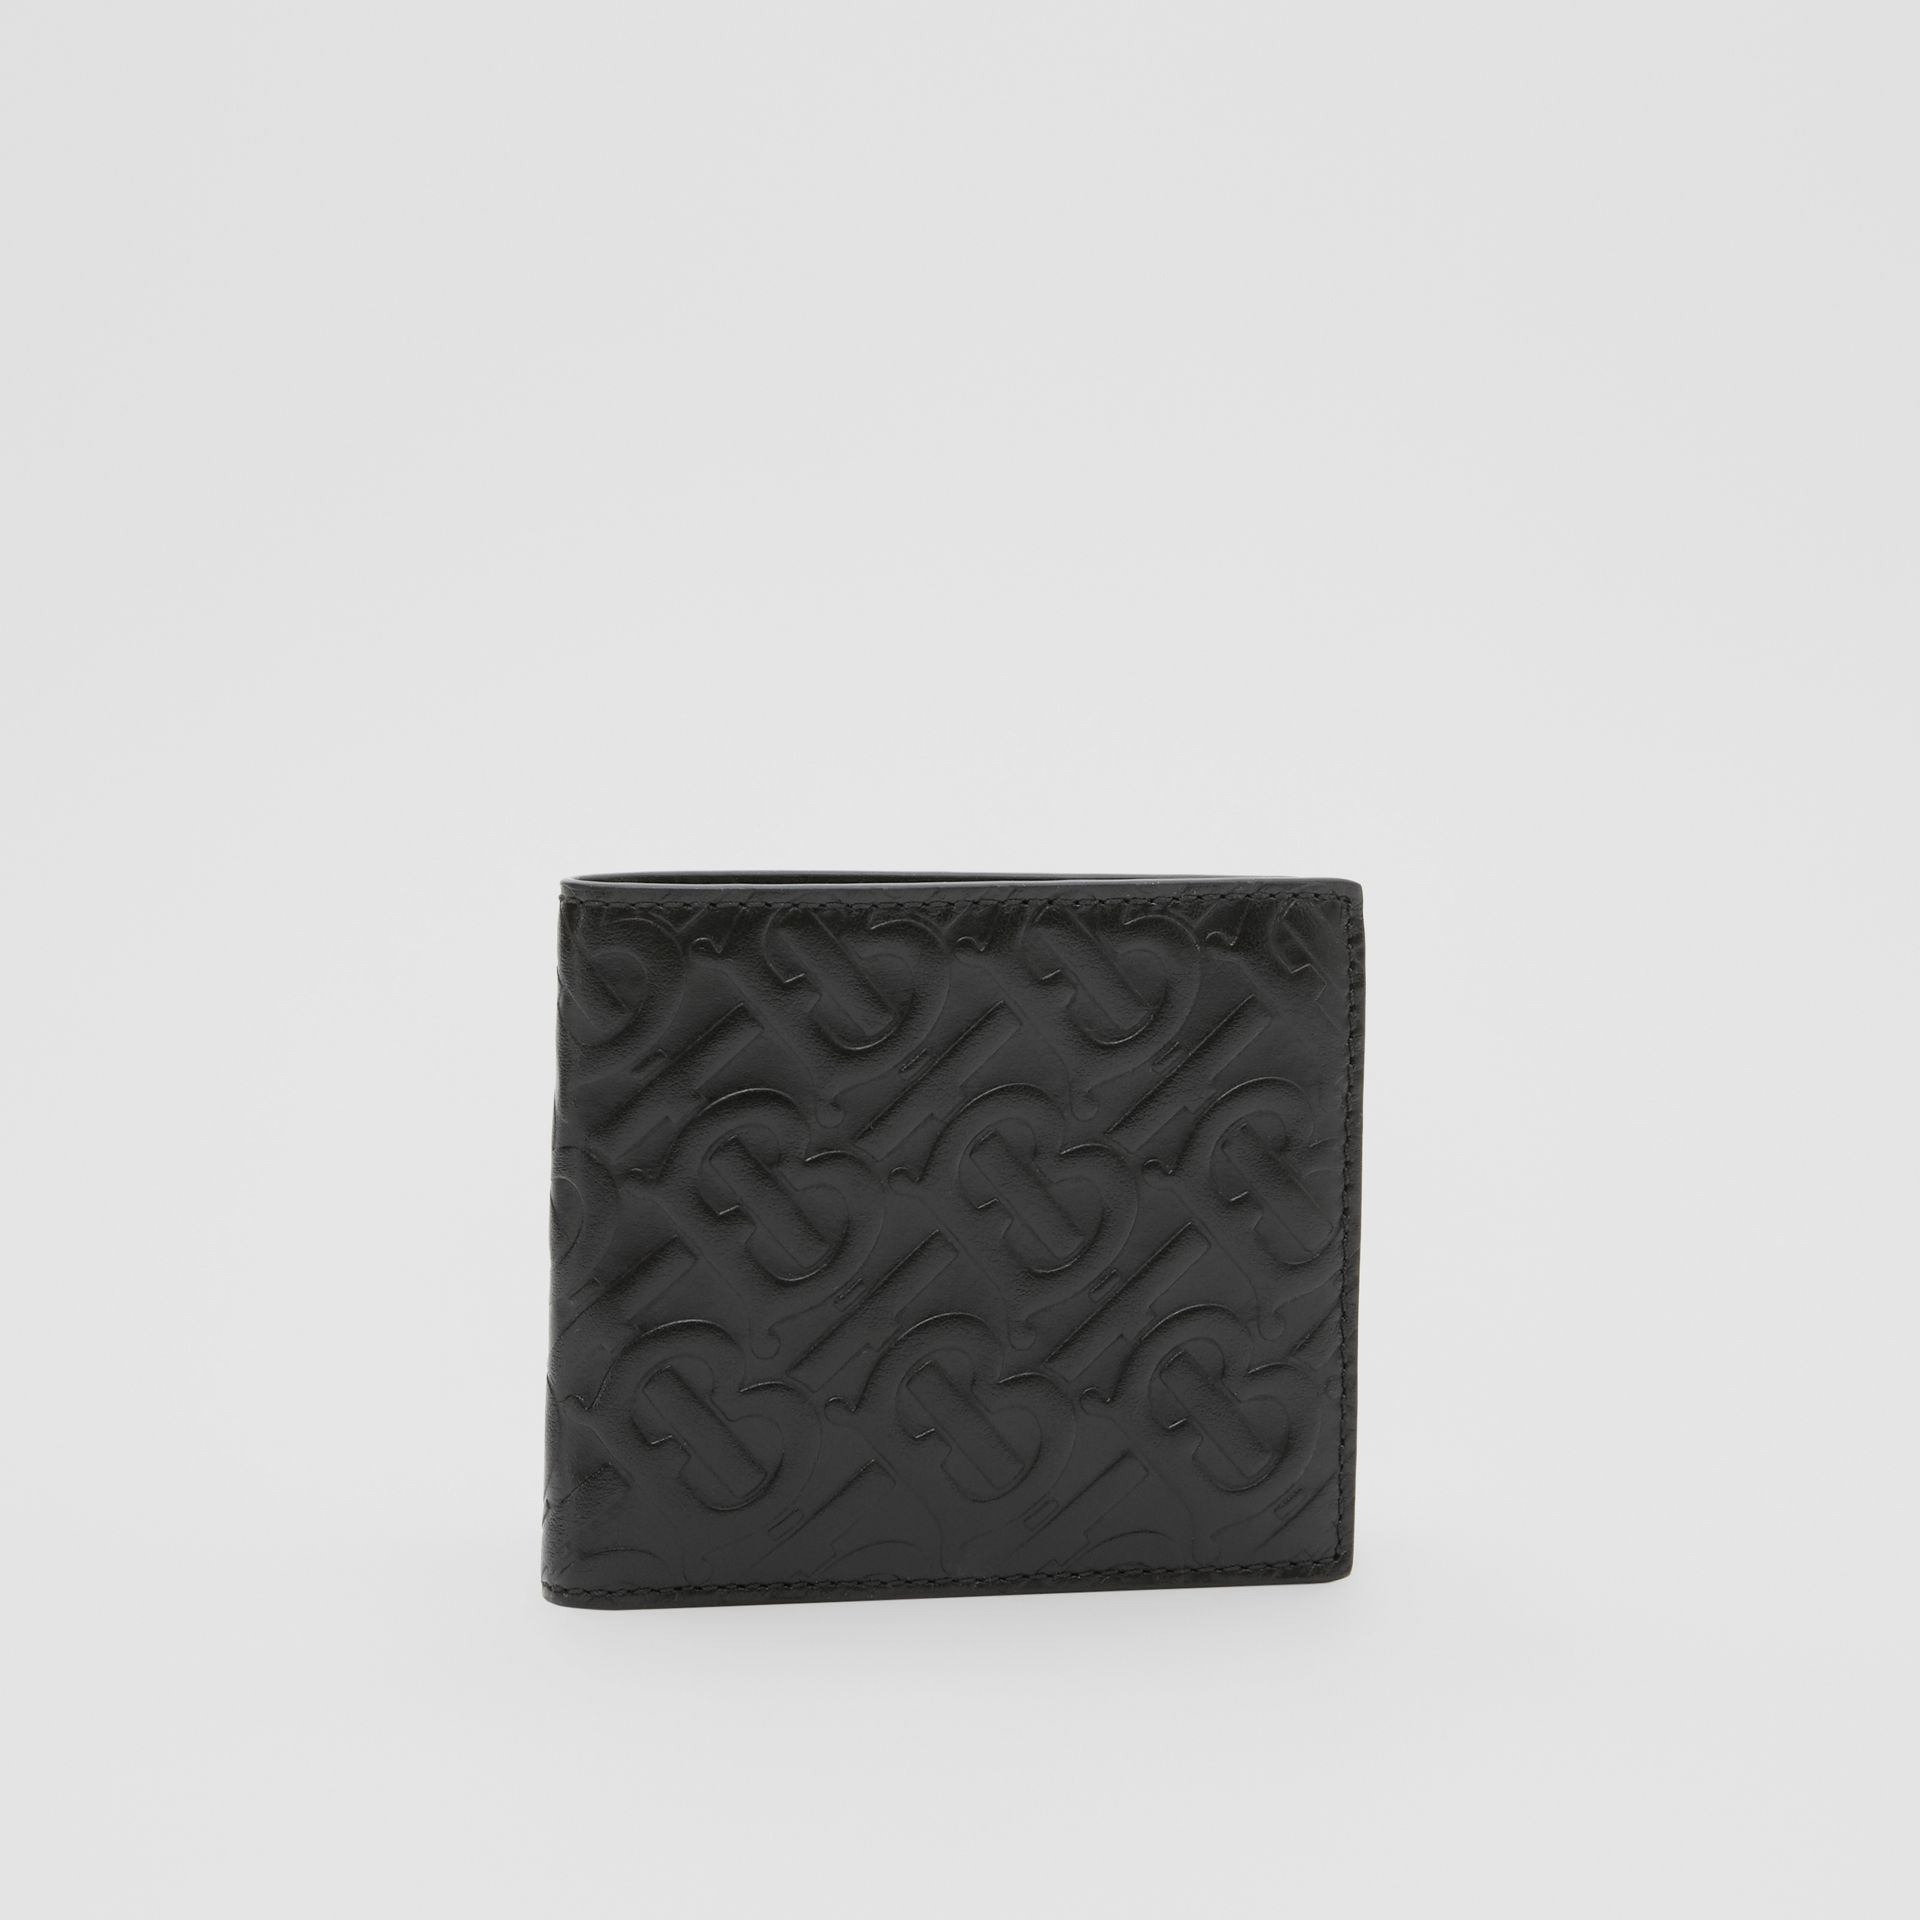 Monogram Leather International Bifold Coin Wallet in Black - Men | Burberry - gallery image 3